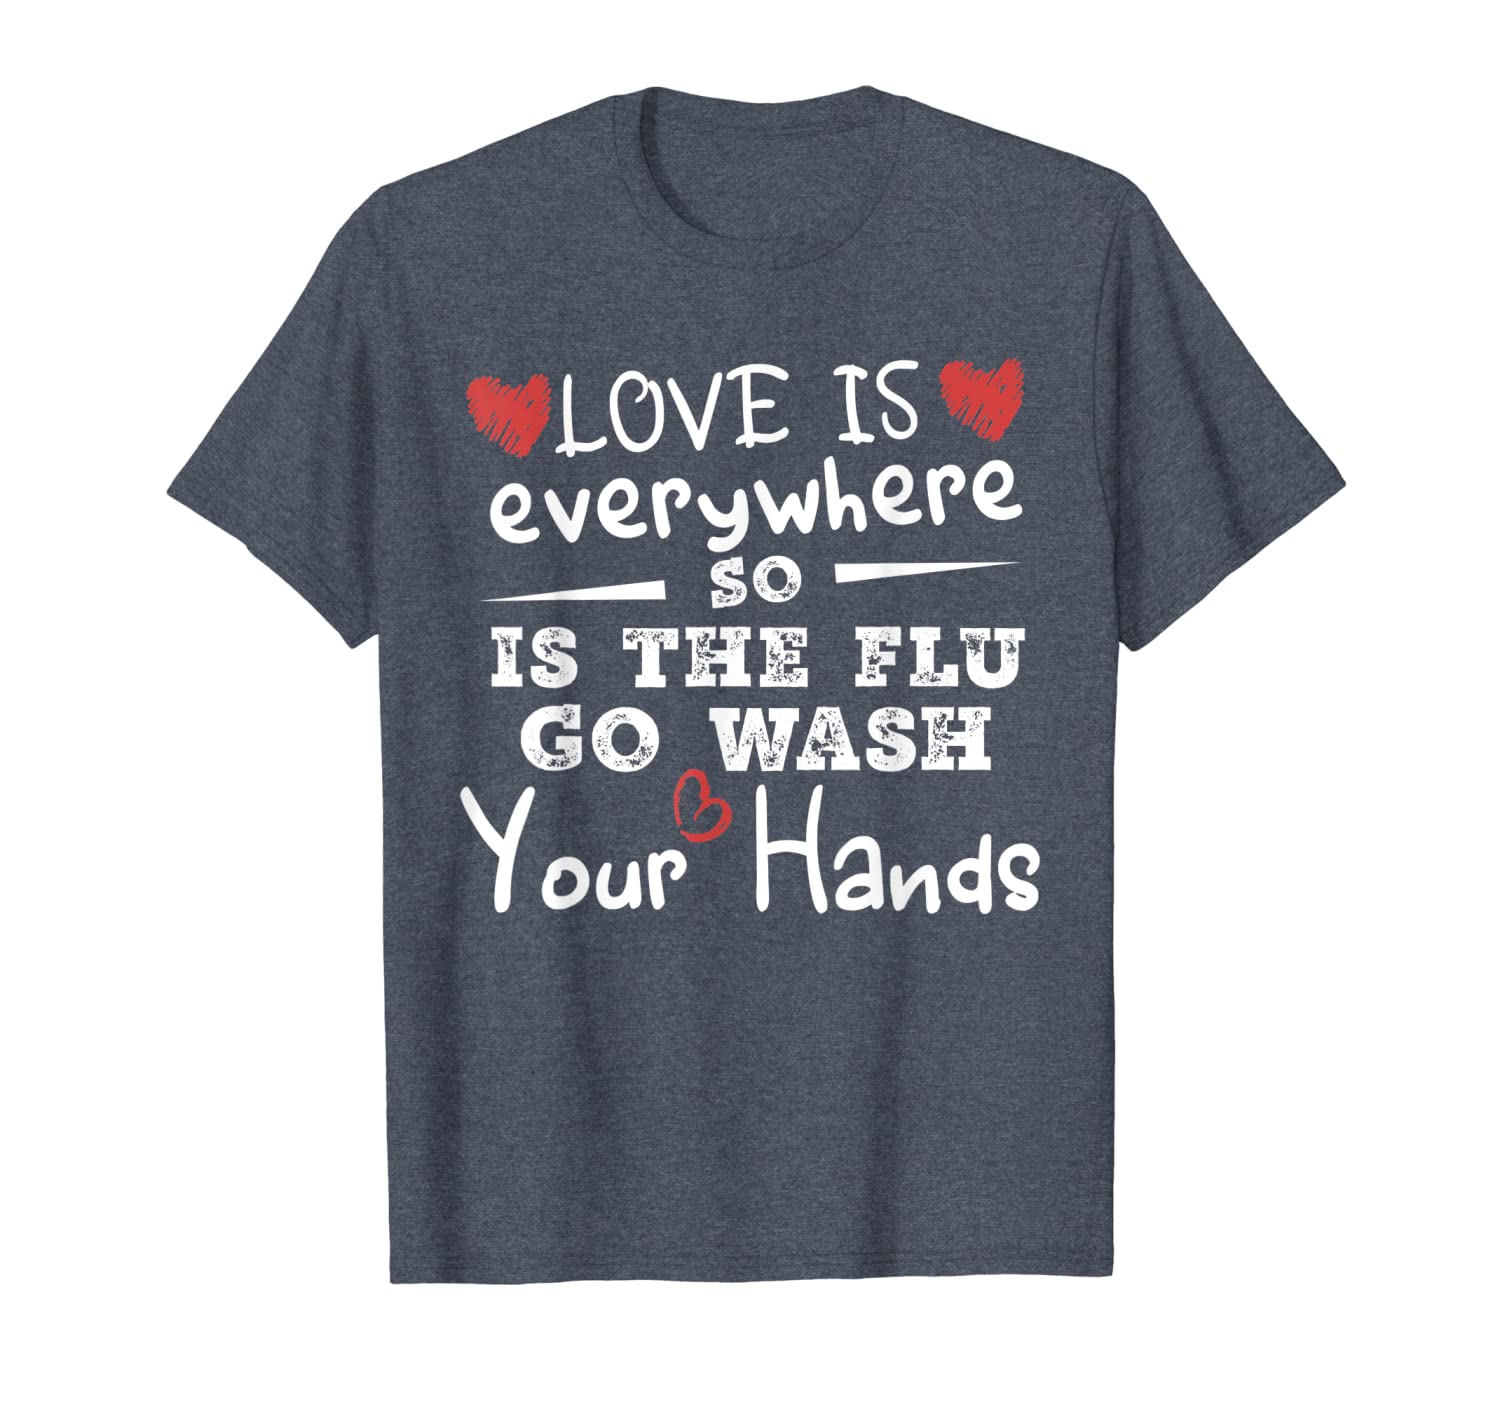 Love Is Everywhere So Is The Flu Wash Your Hands T-Shirt Unisex Tshirt